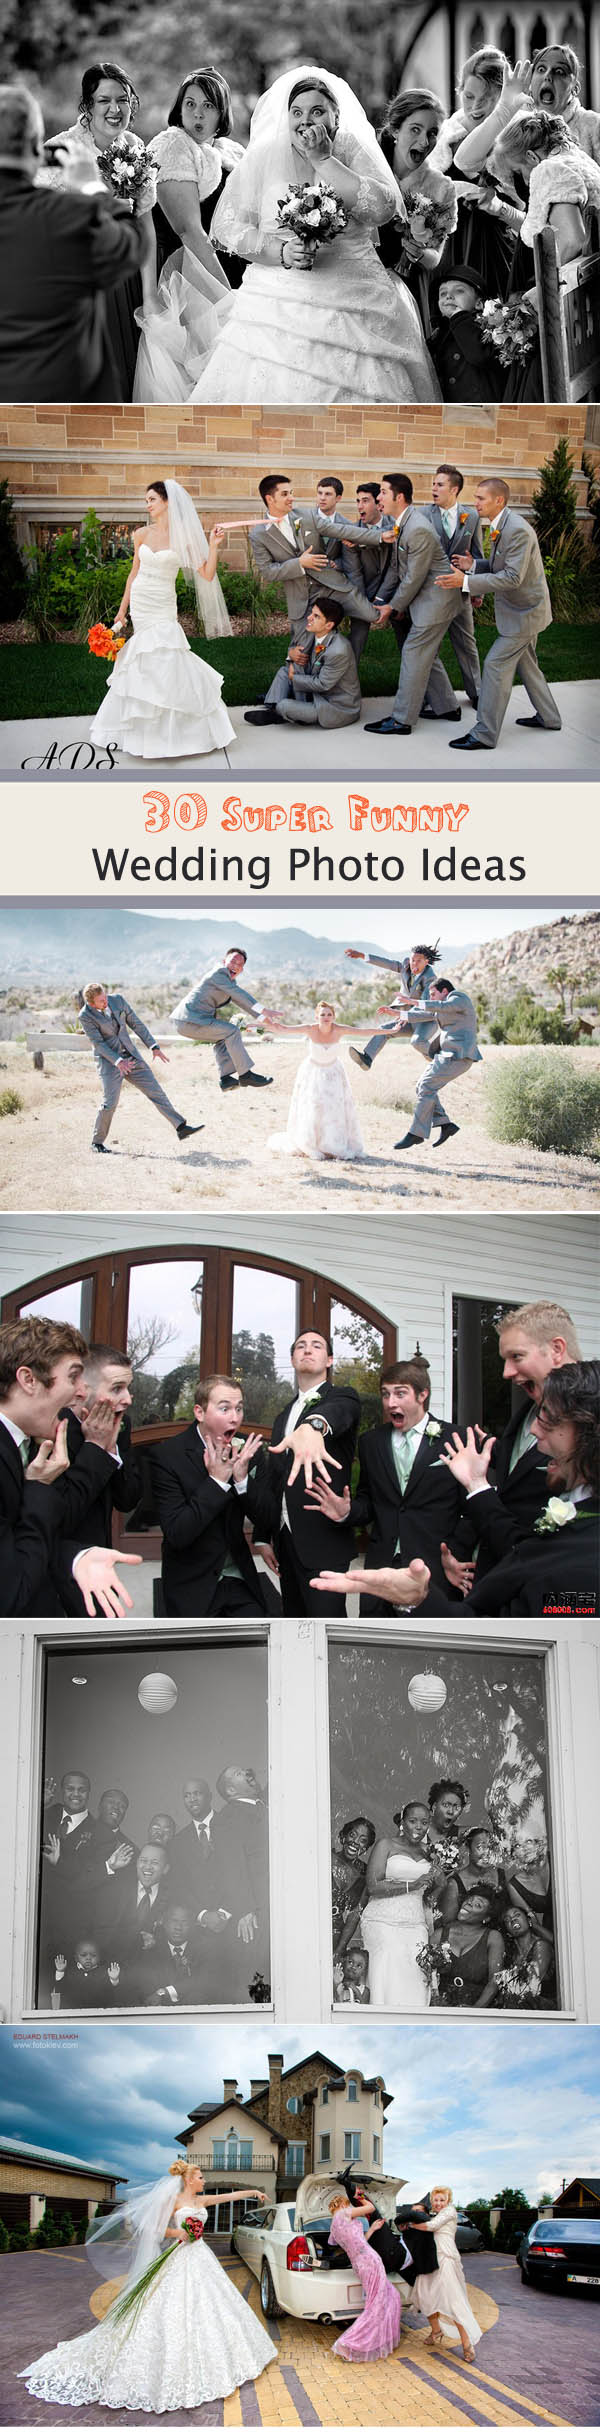 To Make Your Wedding Unforgettable: 30 Super Fun Wedding Photo Ideas